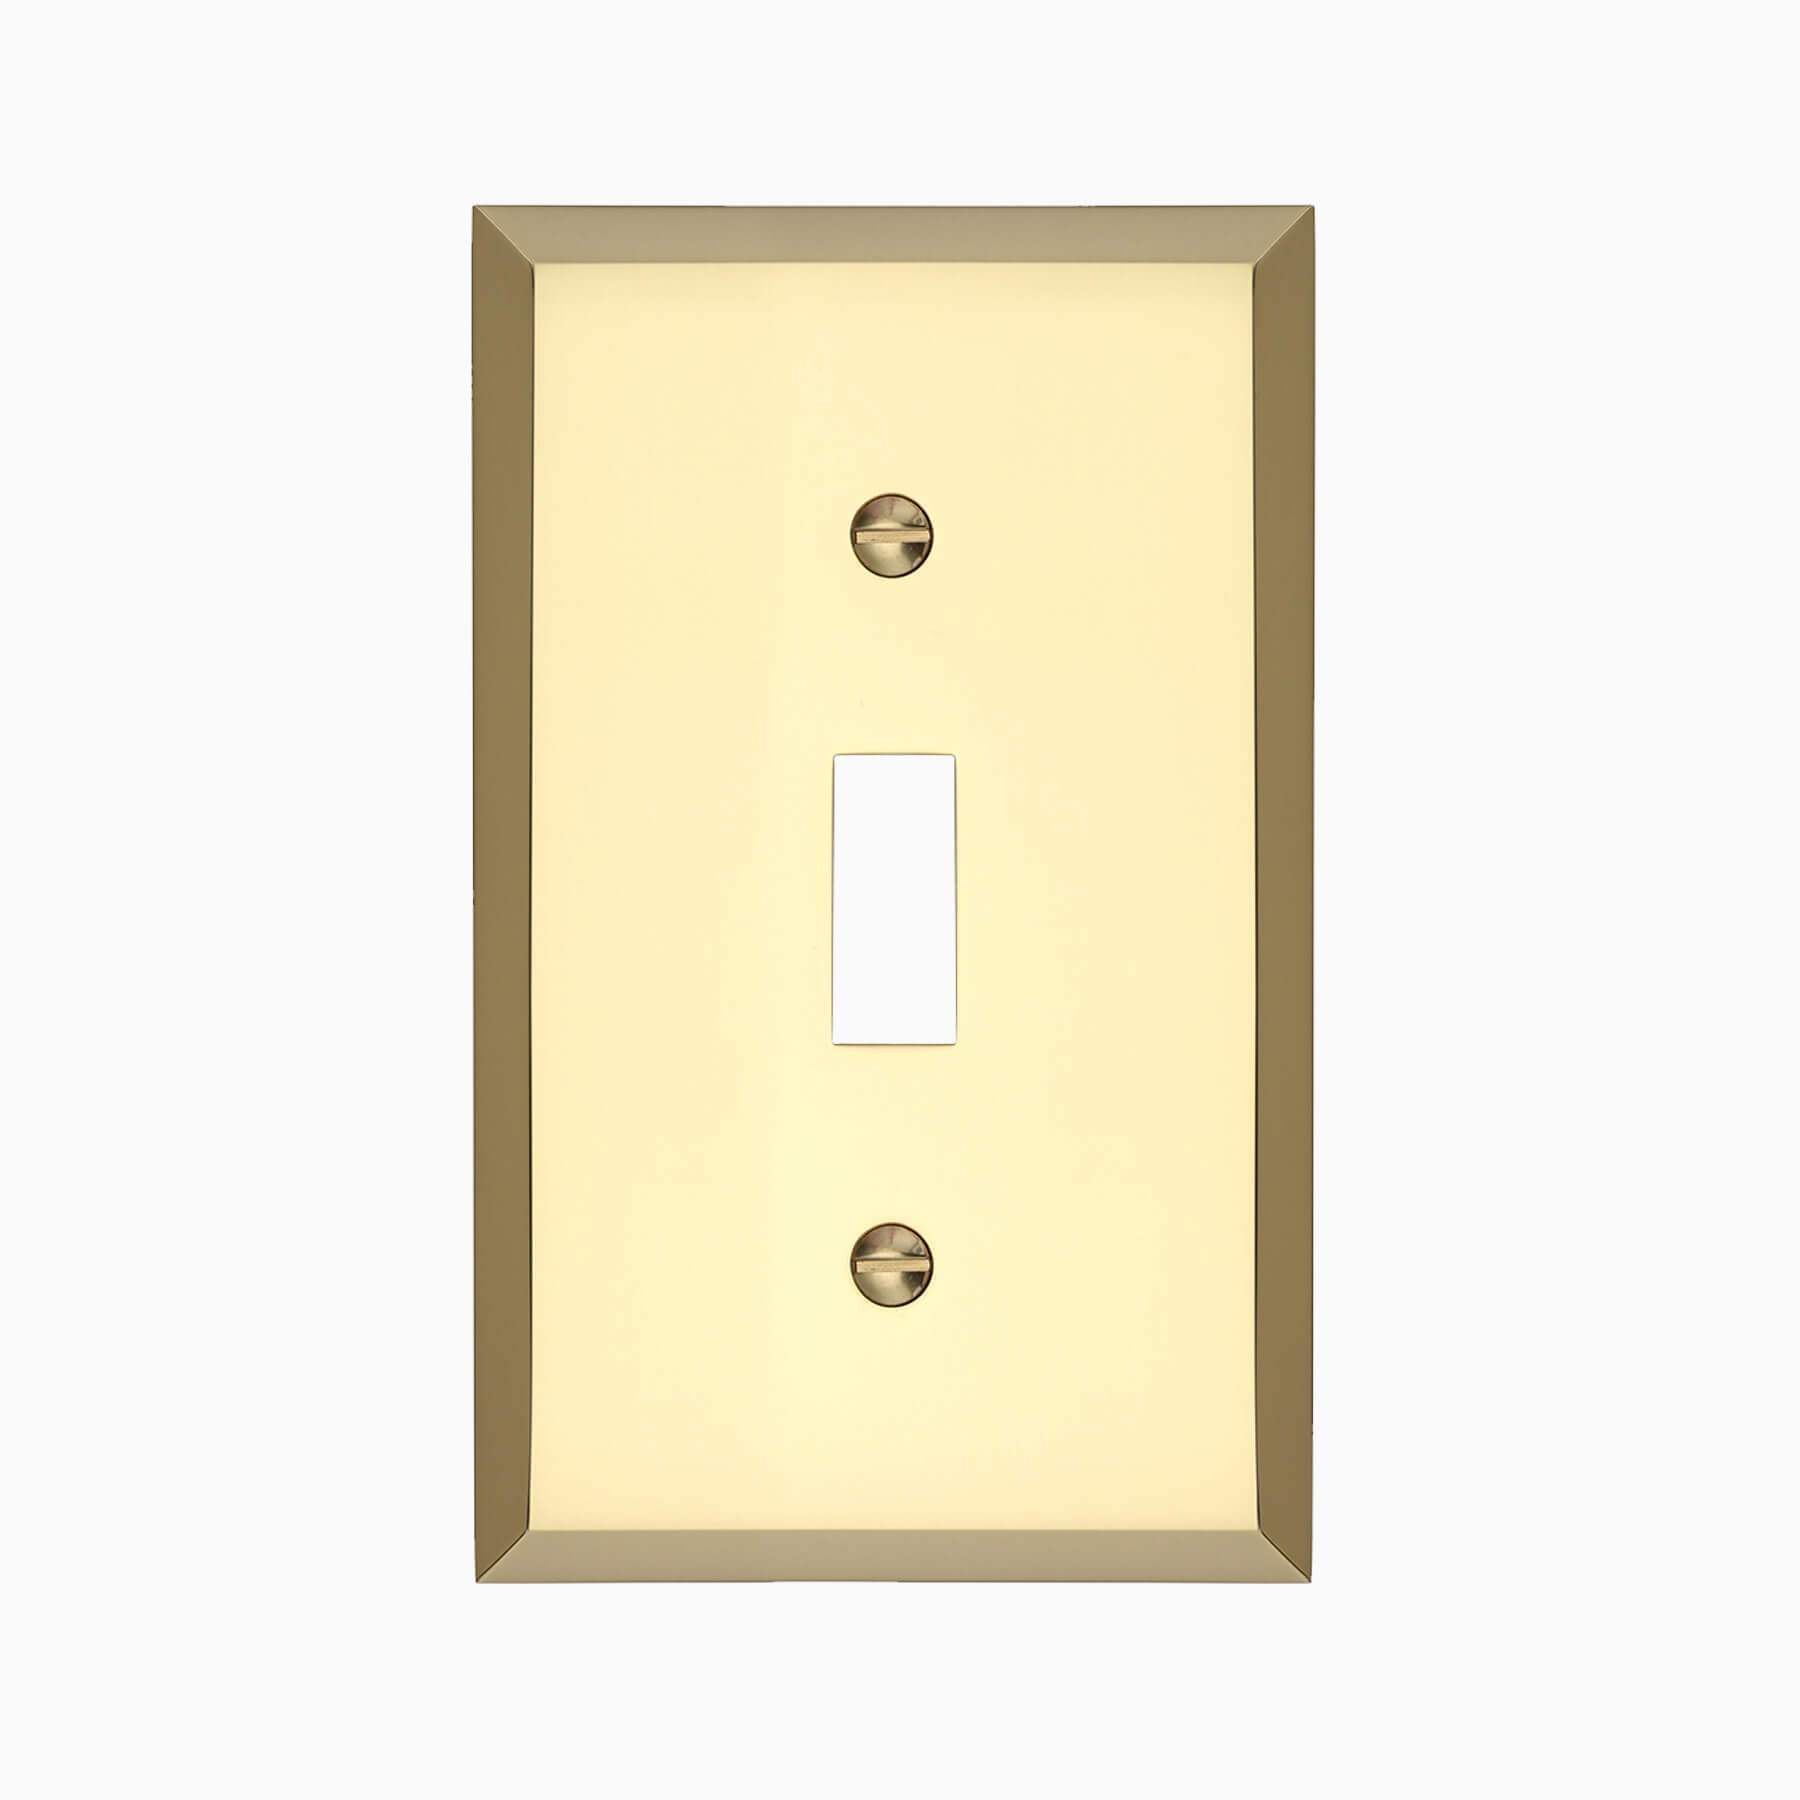 Brass Light Switch Covers Extraordinary Graham Single Light Switch Cover  Wall Mounted Electrical Switch Design Inspiration